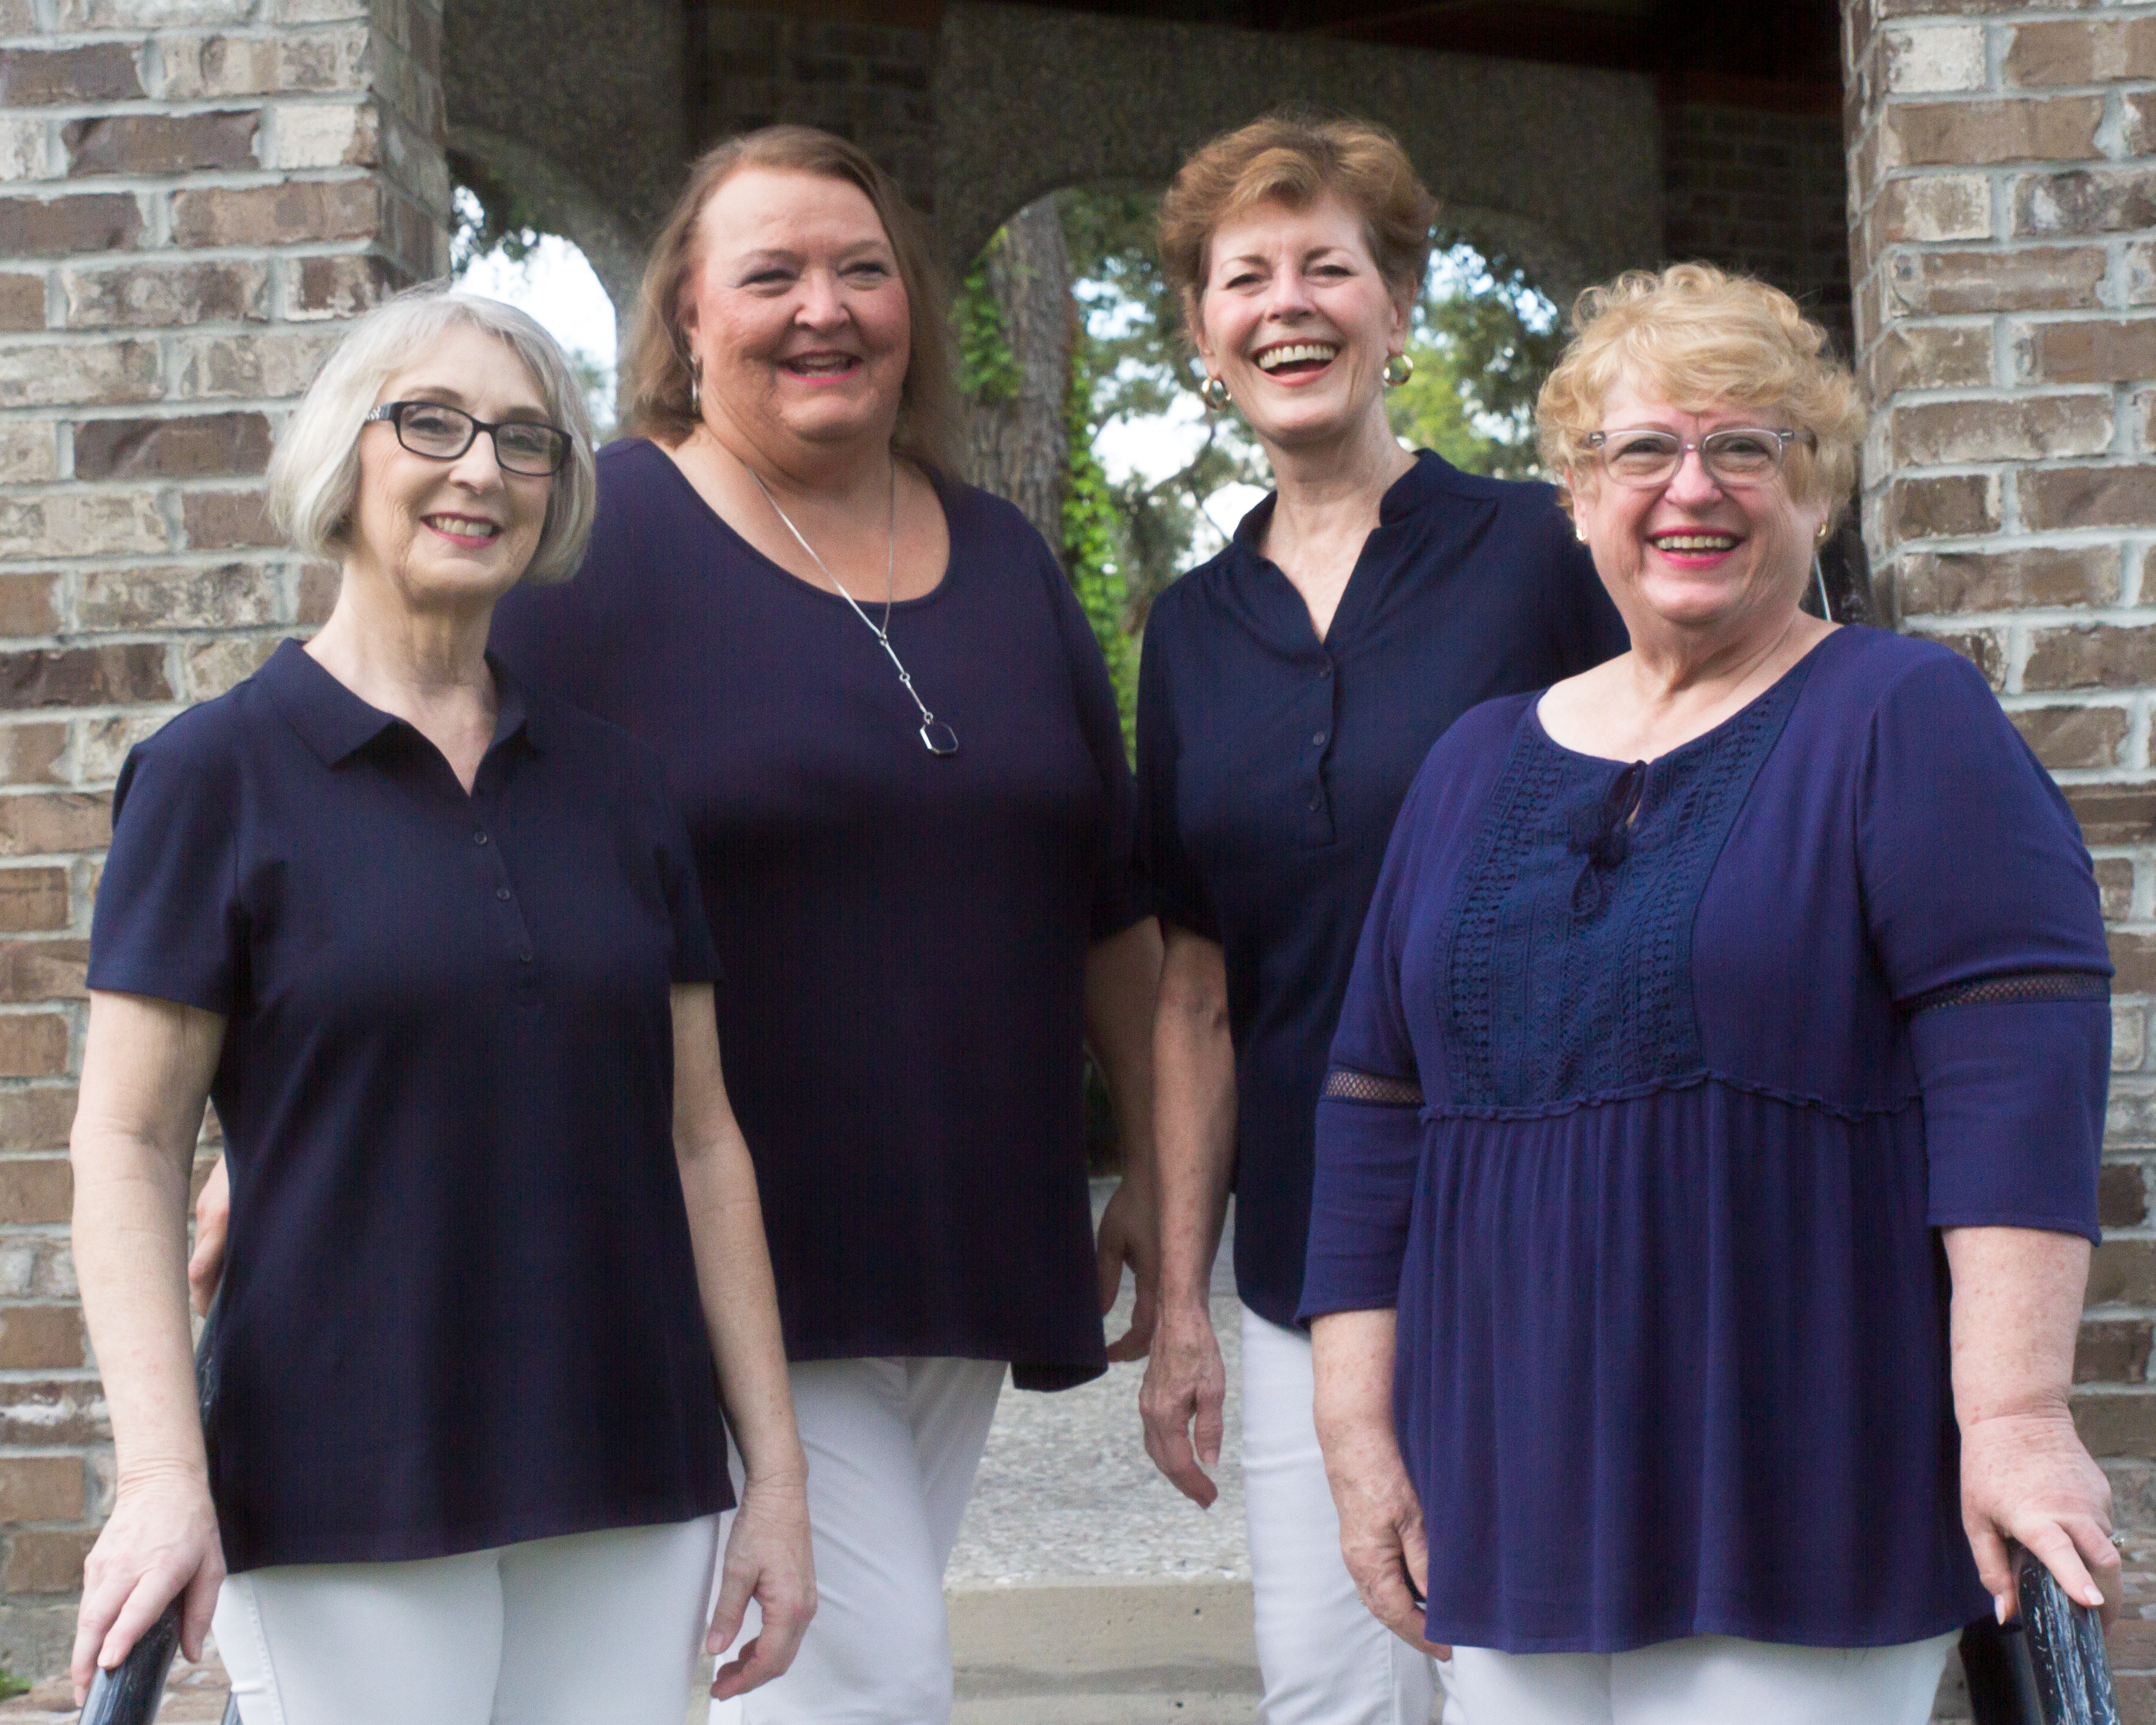 4Ever Friends with Lead Sharon Norris, Bari Sharon McInnis, Bass Kathy Edwards, and Tenor Nancy Everitt,sing togehter for the sheer joy of makeing music with dear friends.  Singing in an a cappella quartet is a unique, wonderful experience and keeps each of us reaching for our absolute musical best.  A quartet like 4Ever Friends spends countless hours together, singing, laughing, learning new music, learning about each other, all in a